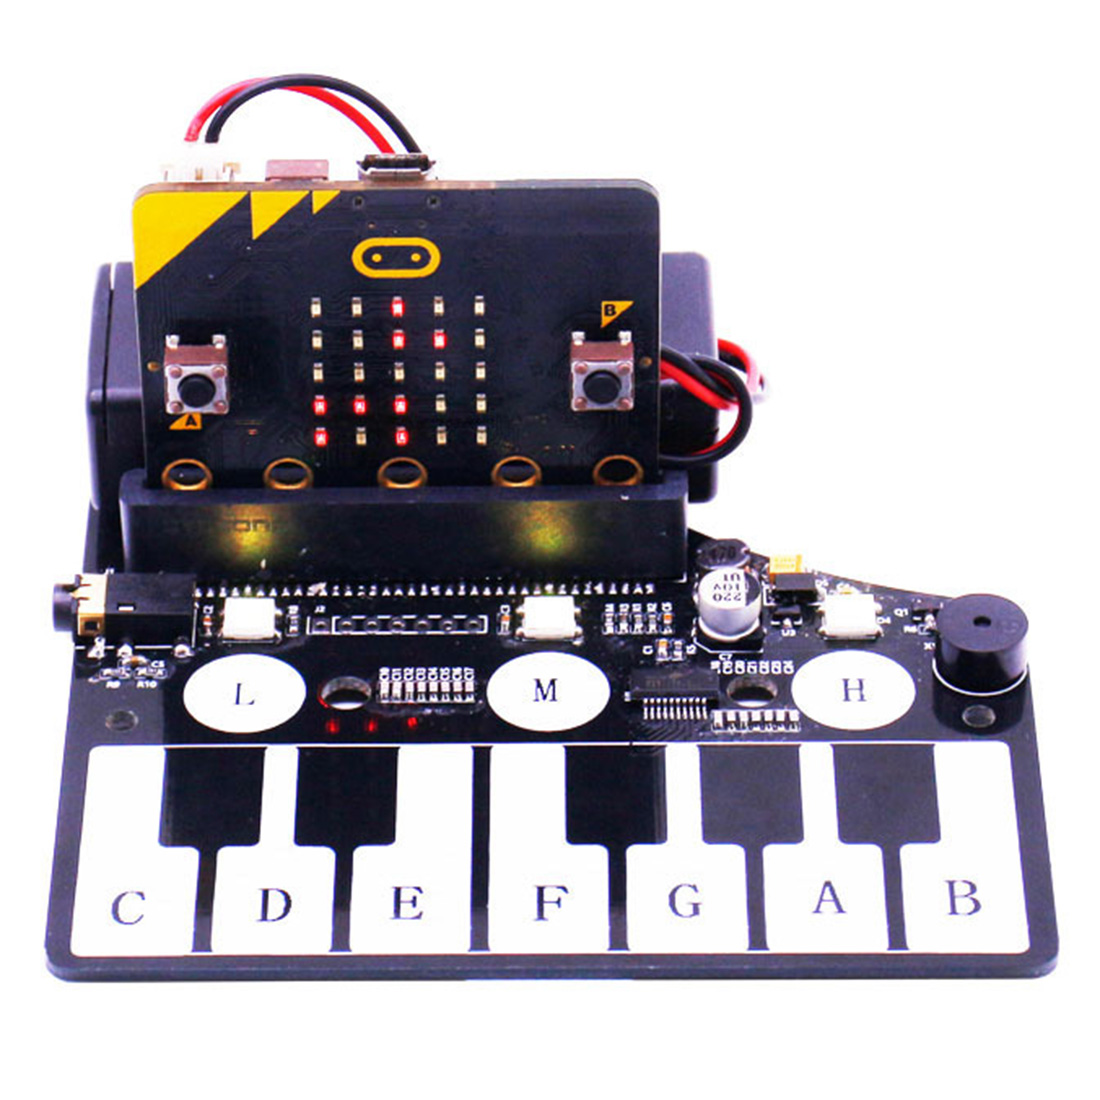 Piano Shape Expansion Board Music Development Board With RGB Colored Light Buzzer For Microbit Programmable Toy For Kids